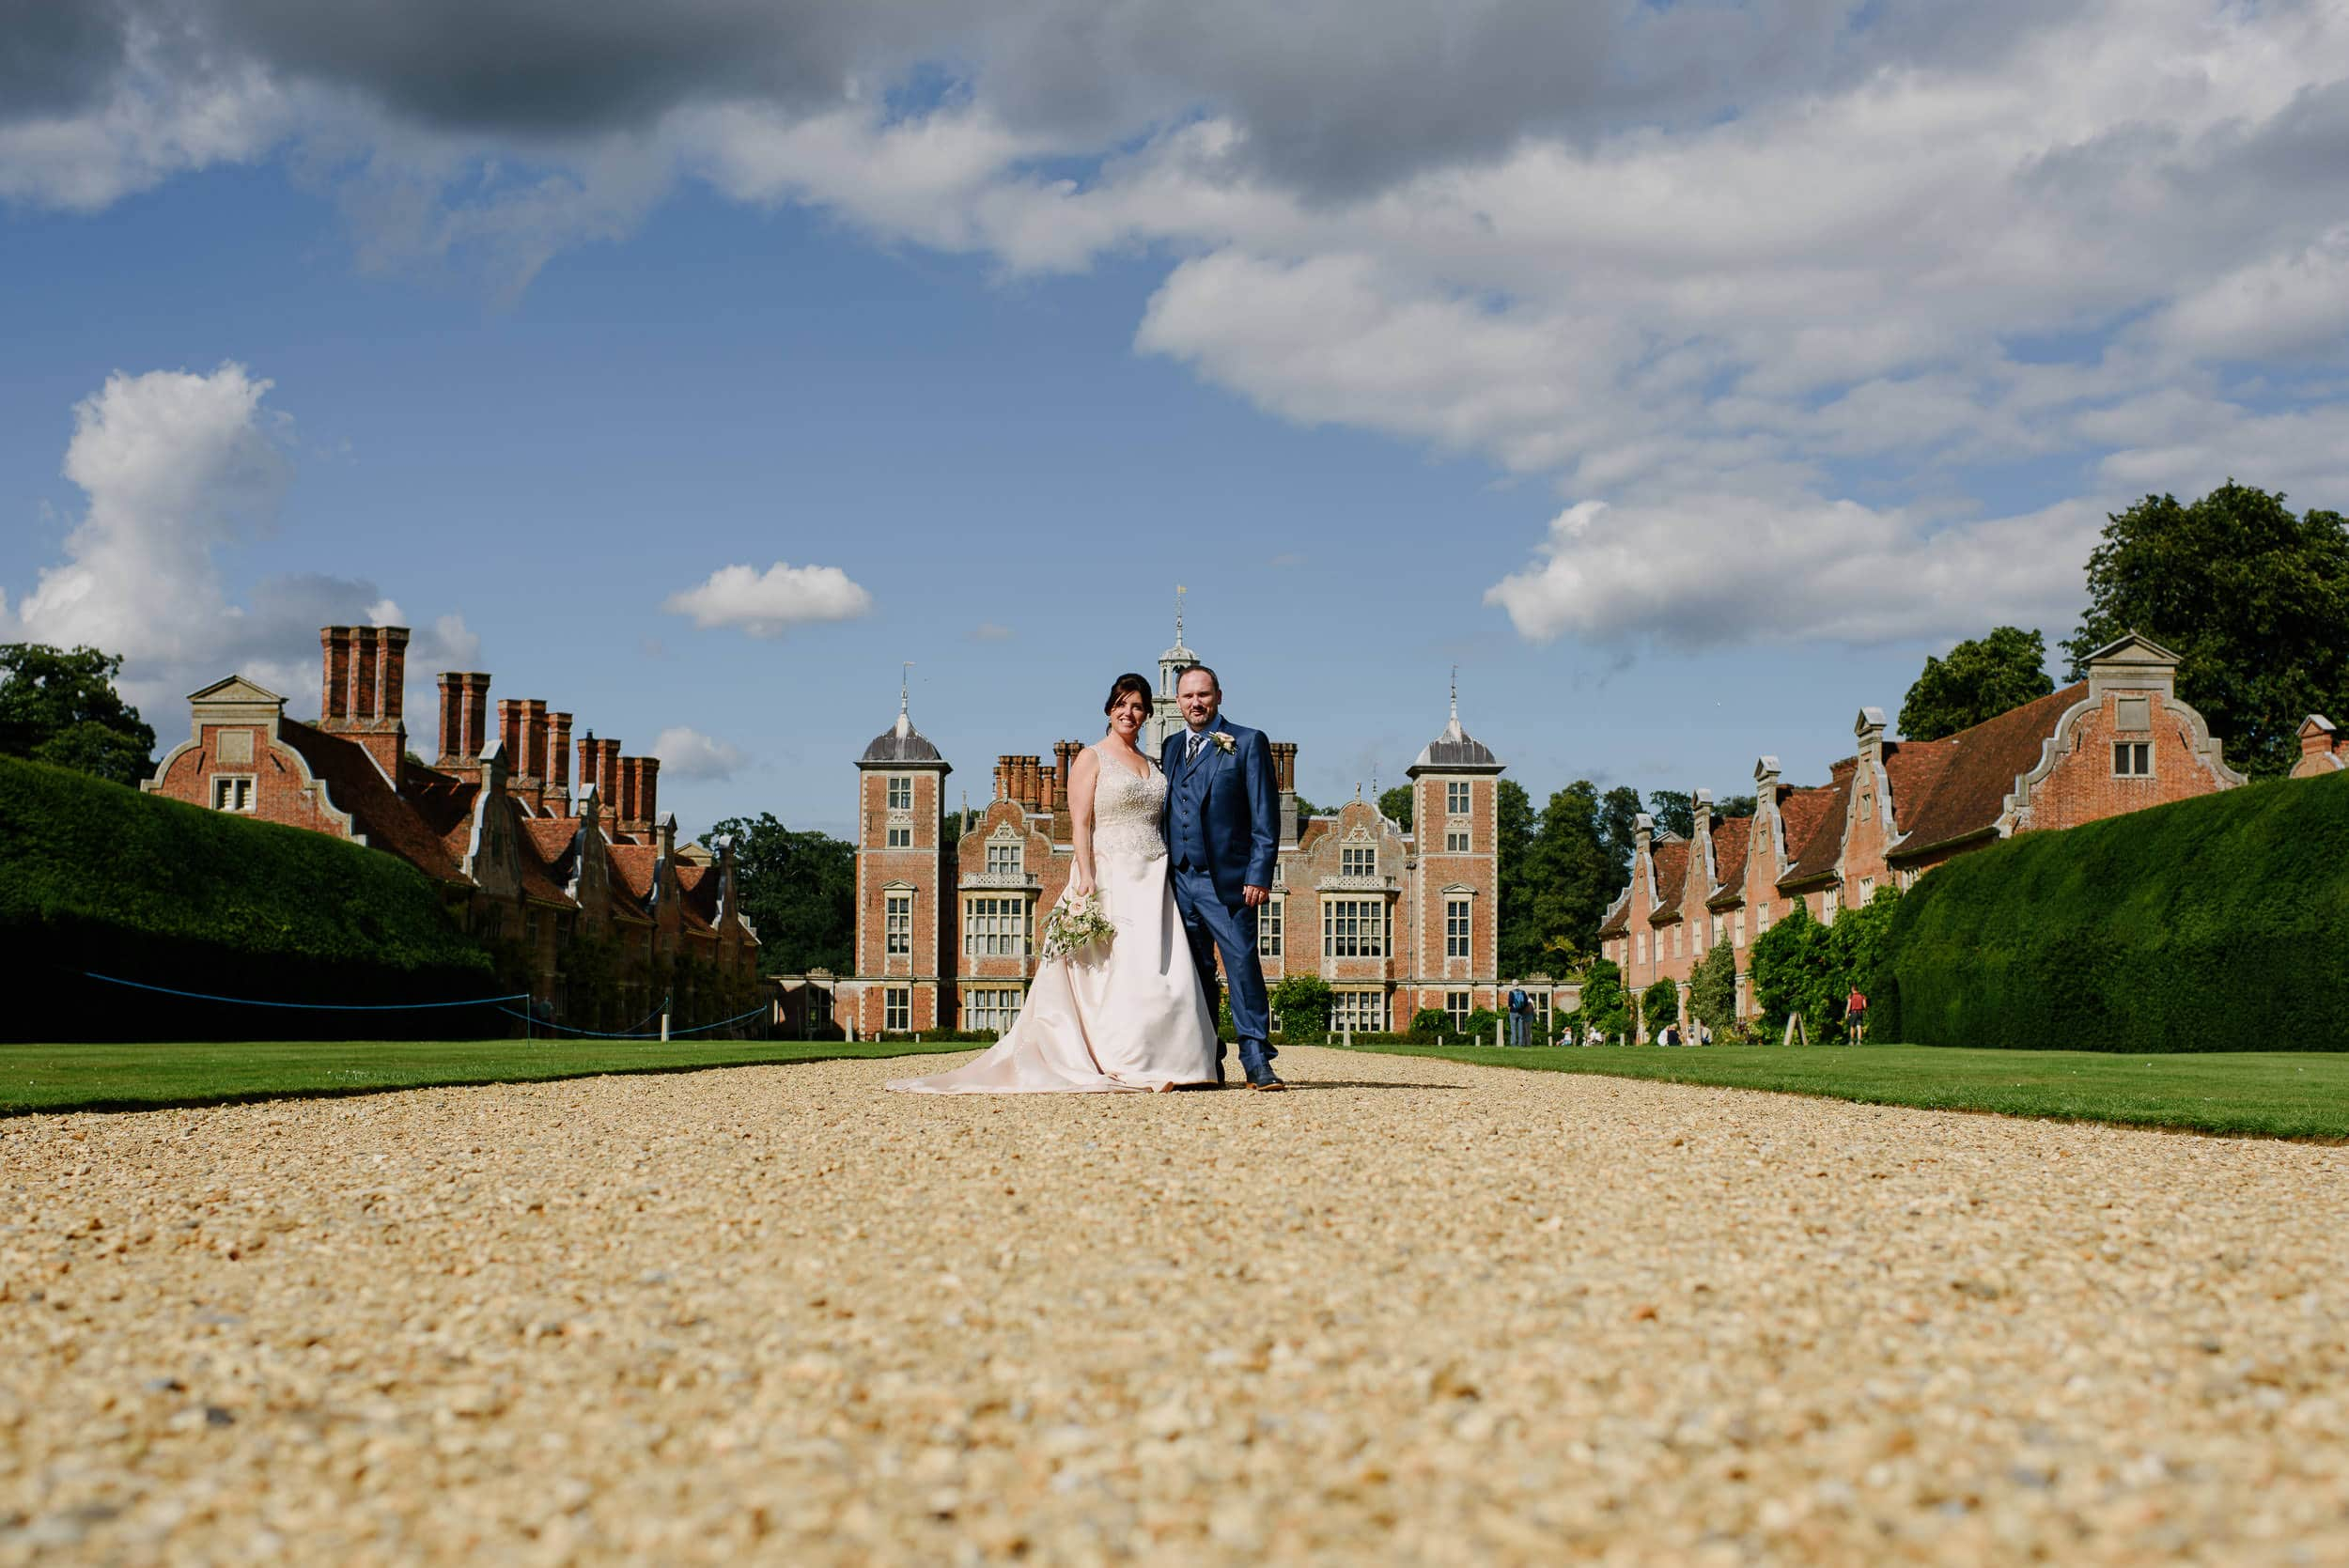 Suzy & Mike - Blickling Hall Wedding 25